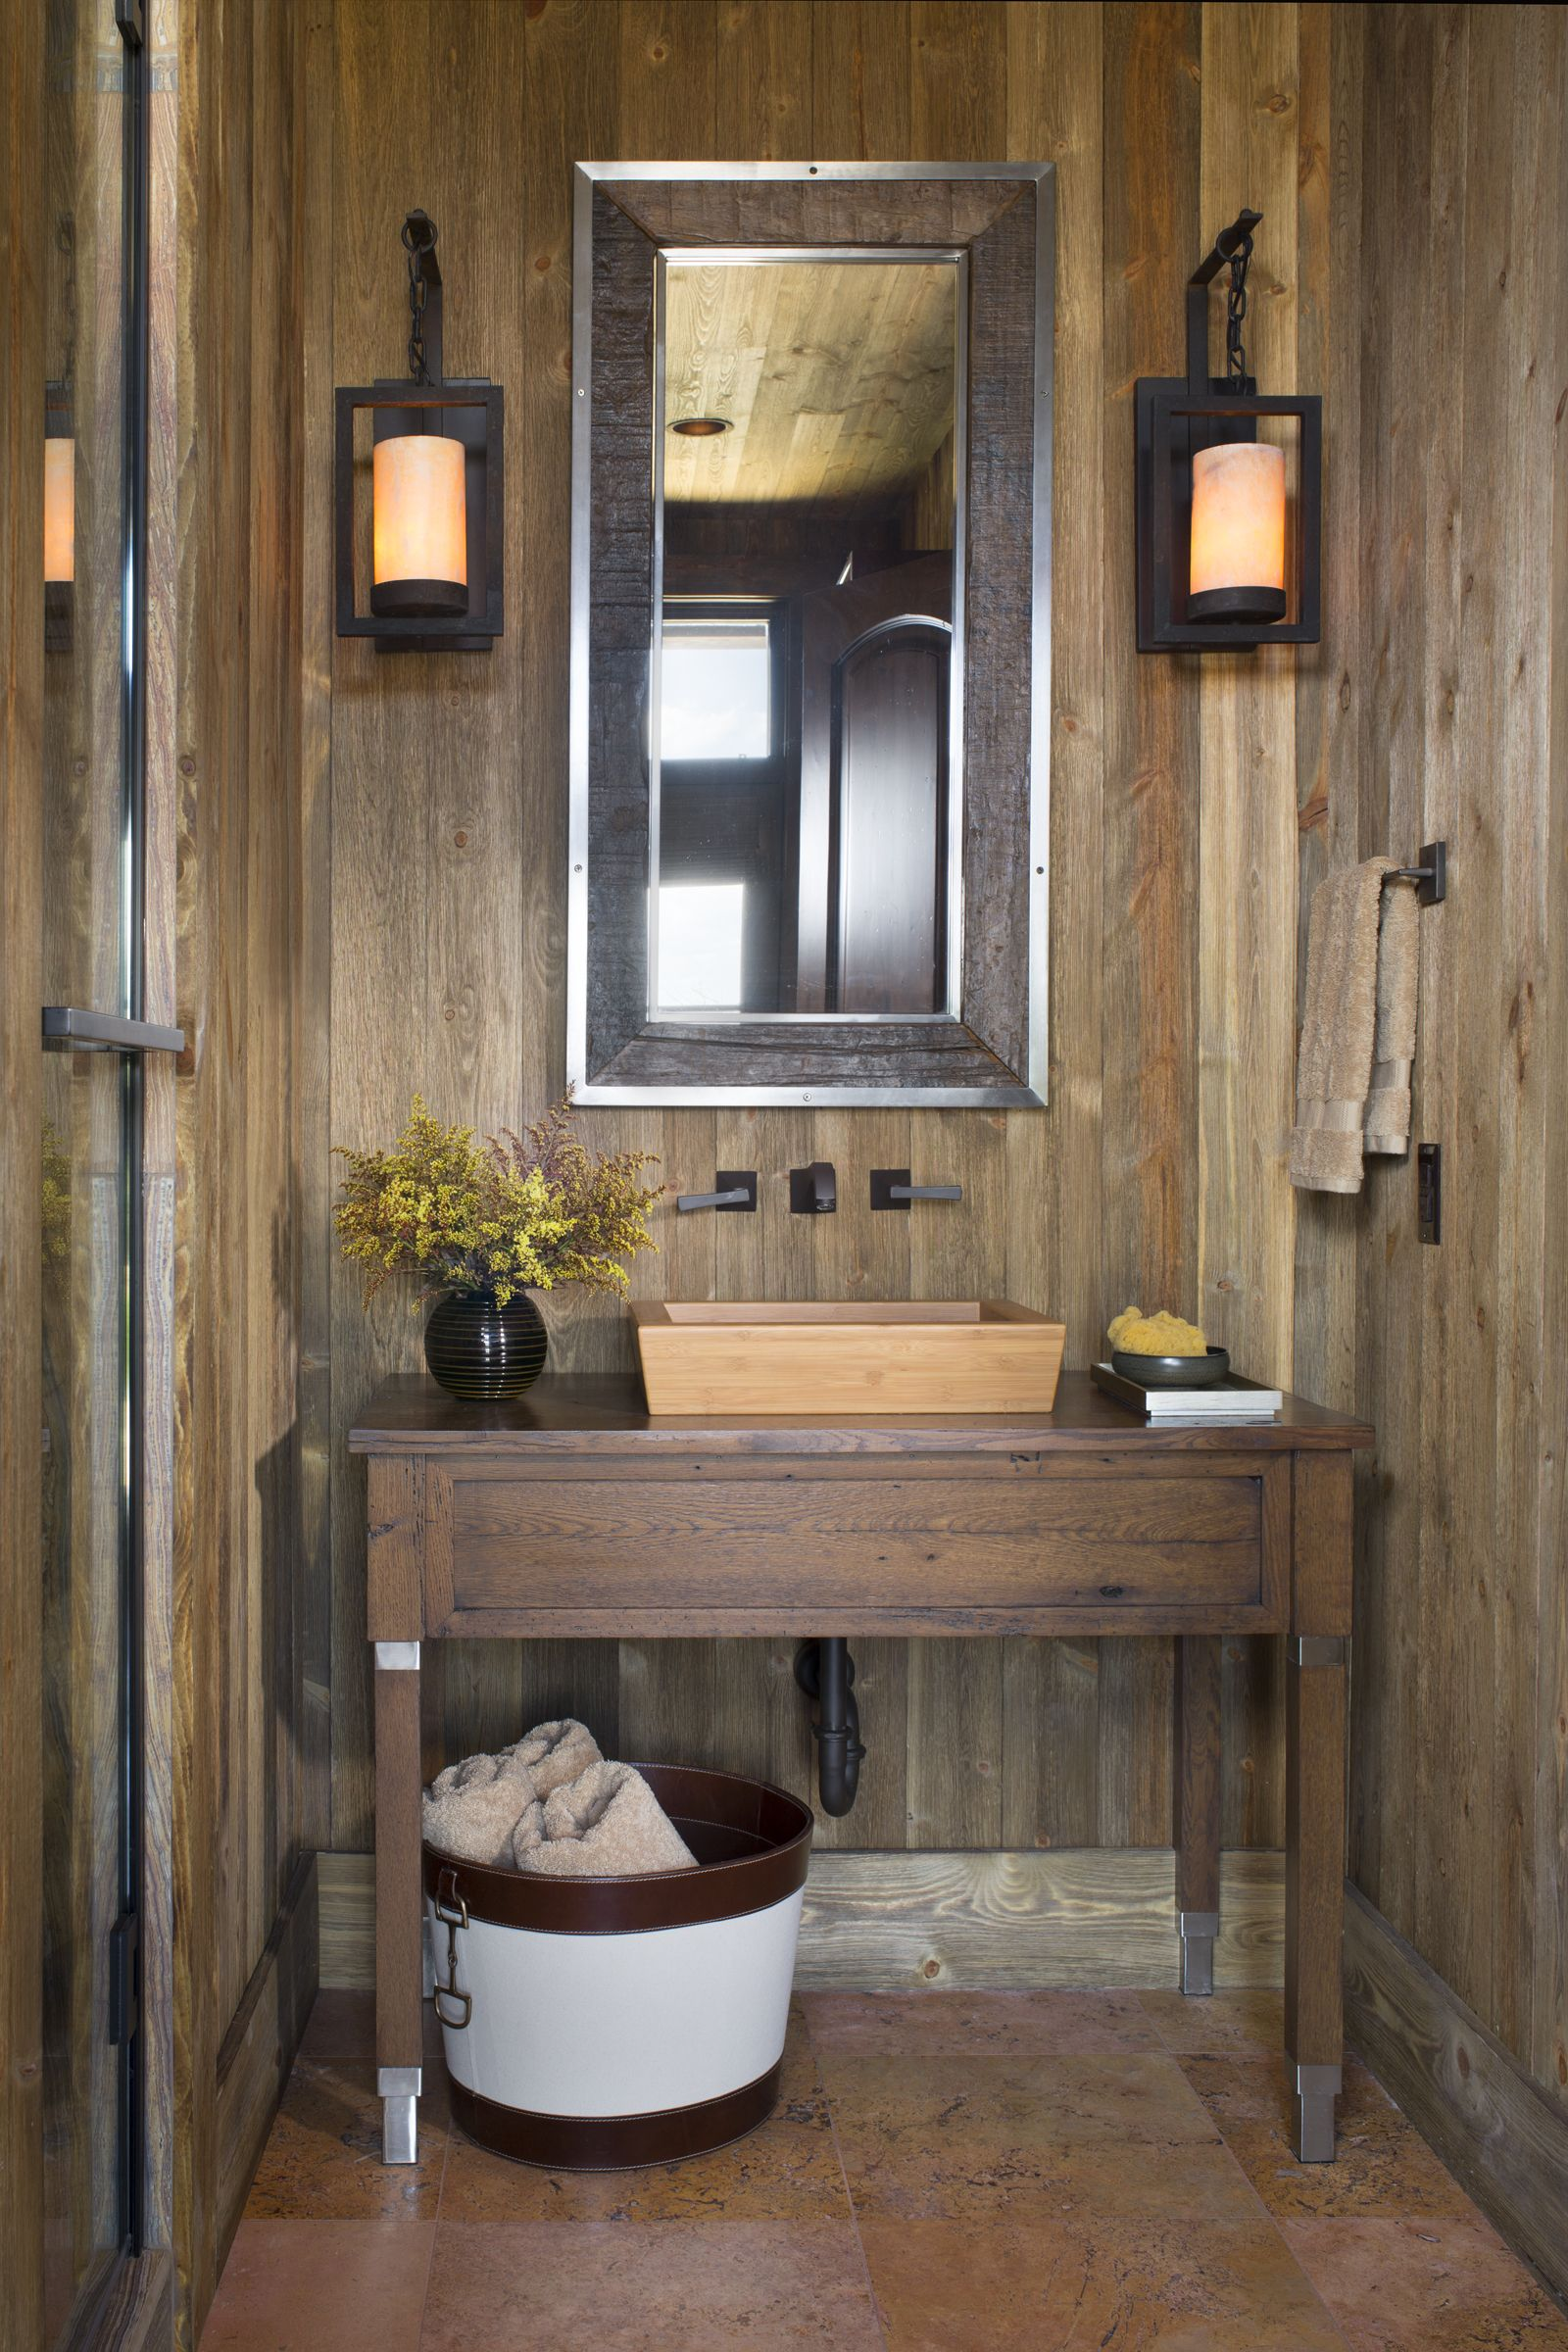 Superior Powder Bath By Design House   Houston, TX. Wood Panel Walls, Wood And